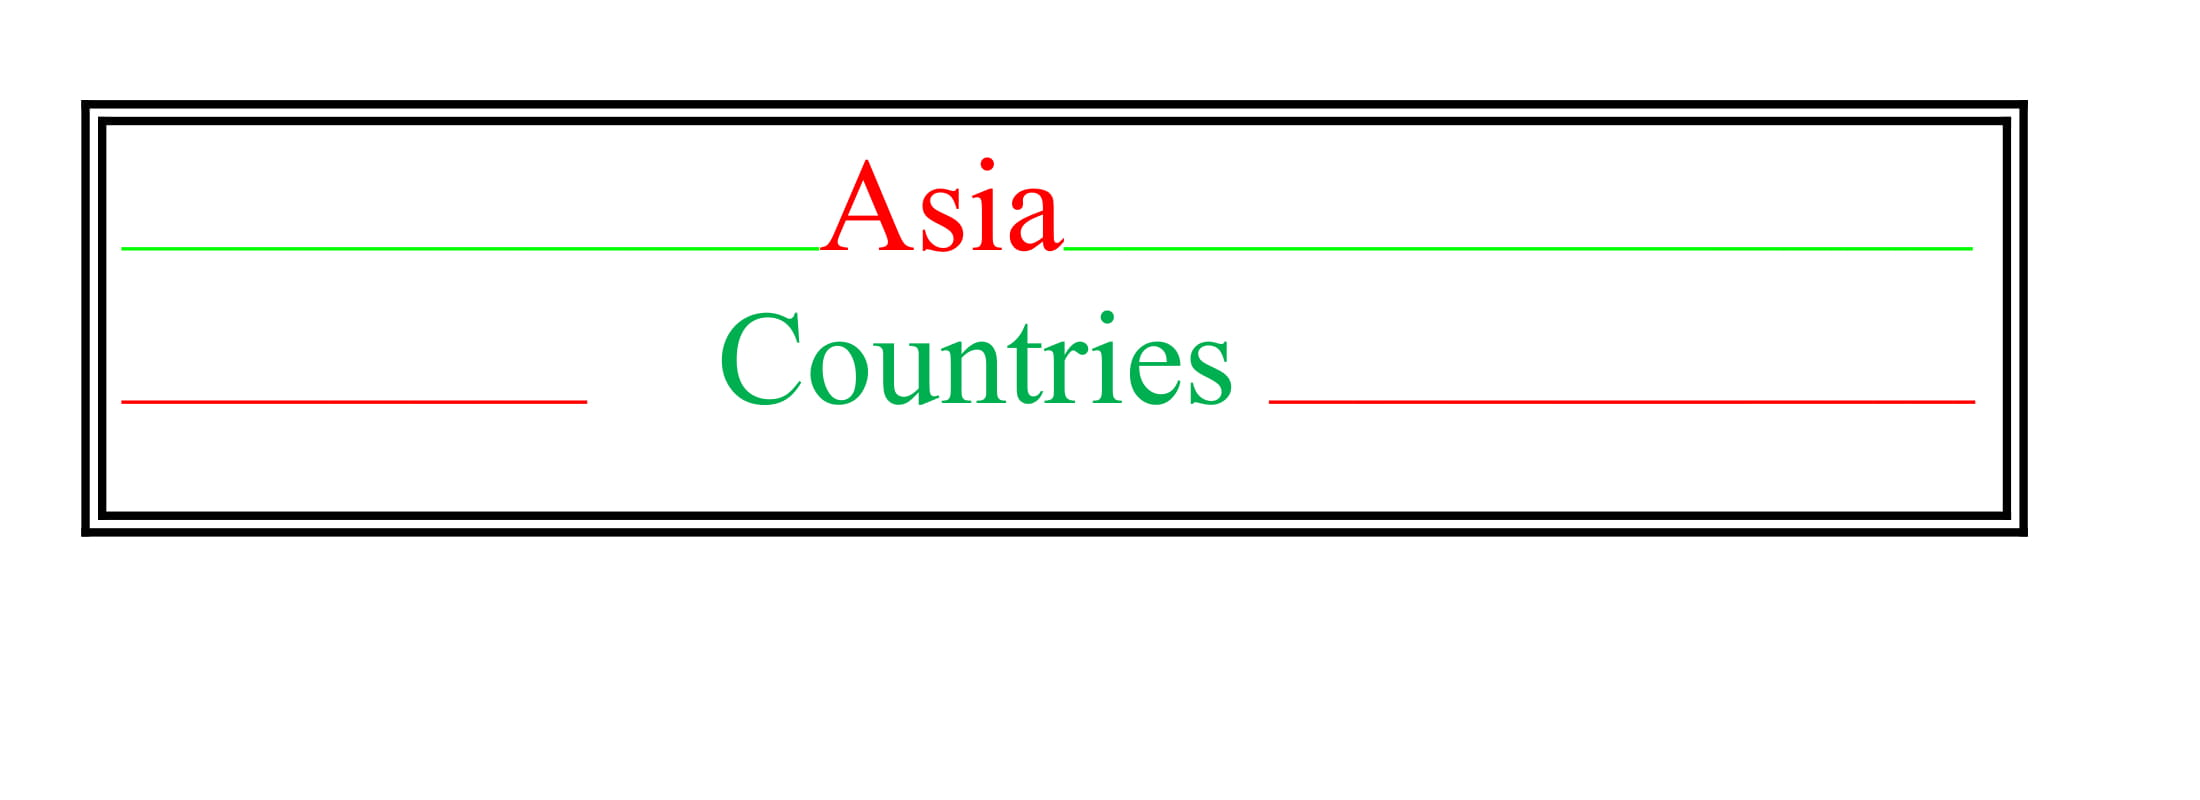 Universities of Asia Countries